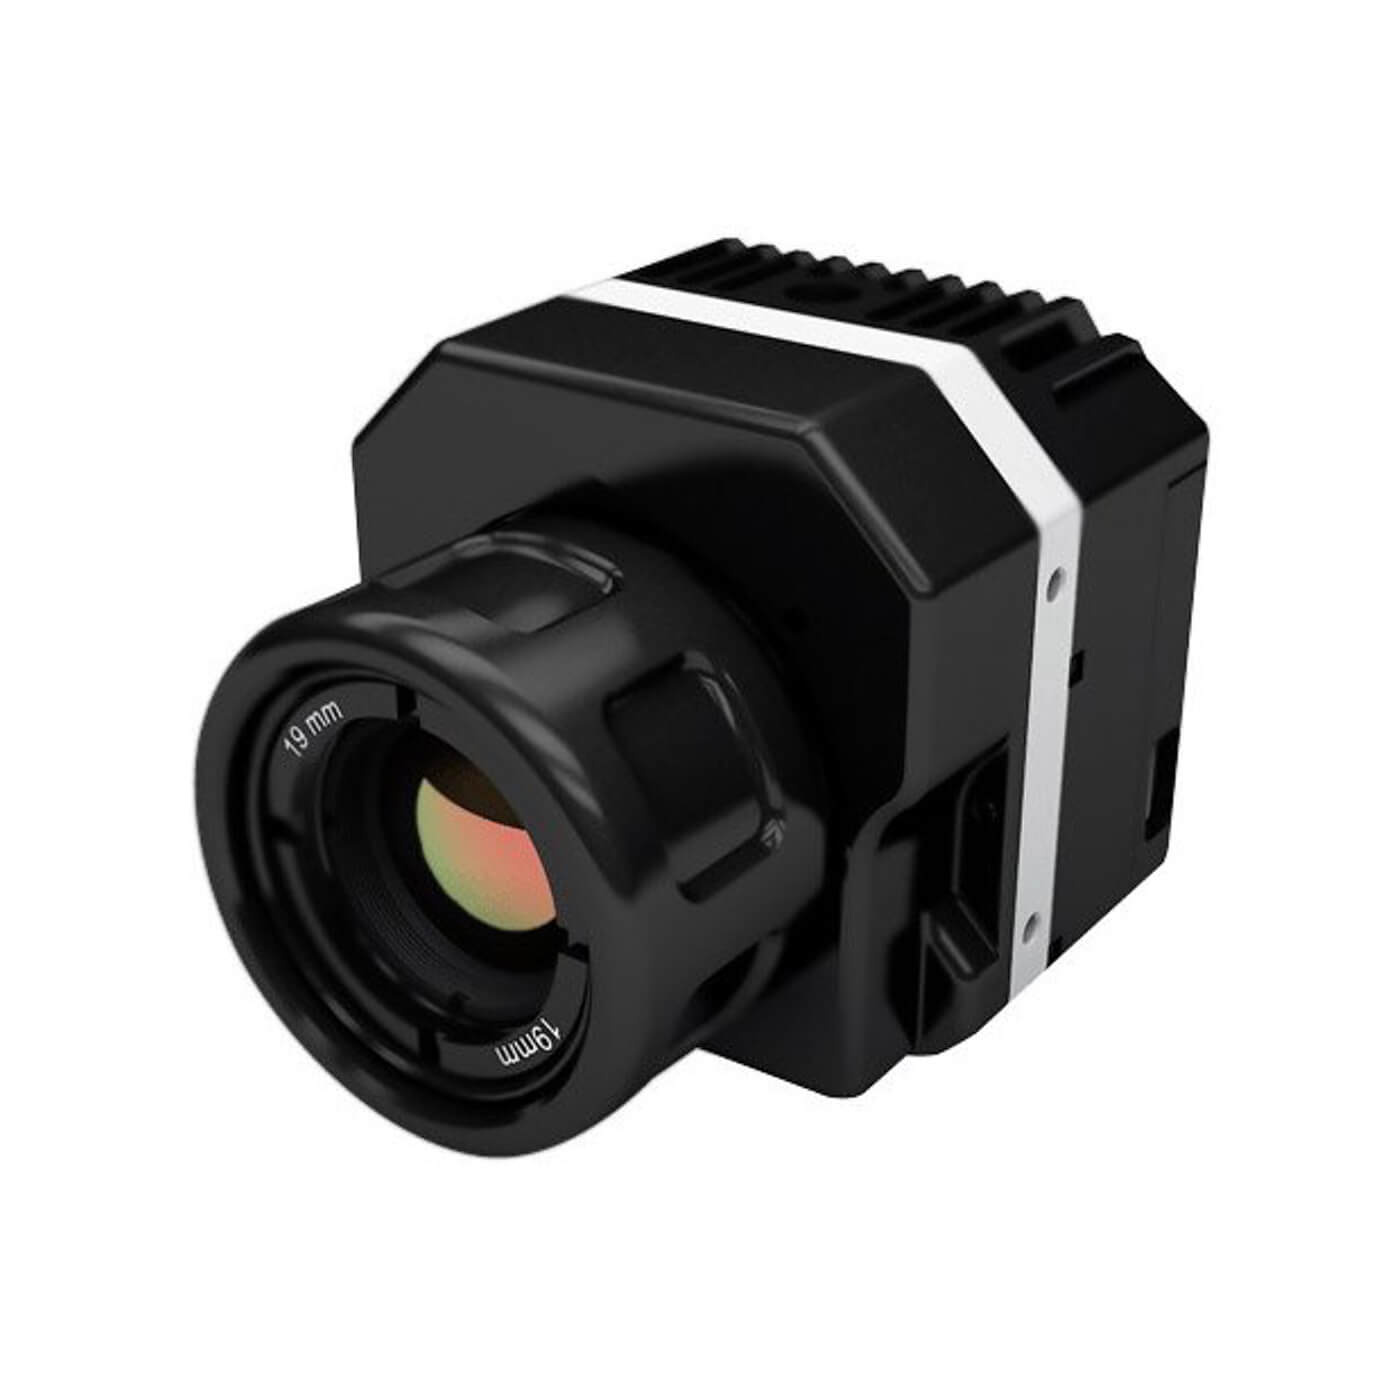 Flir Vue640 thermal imager for drones